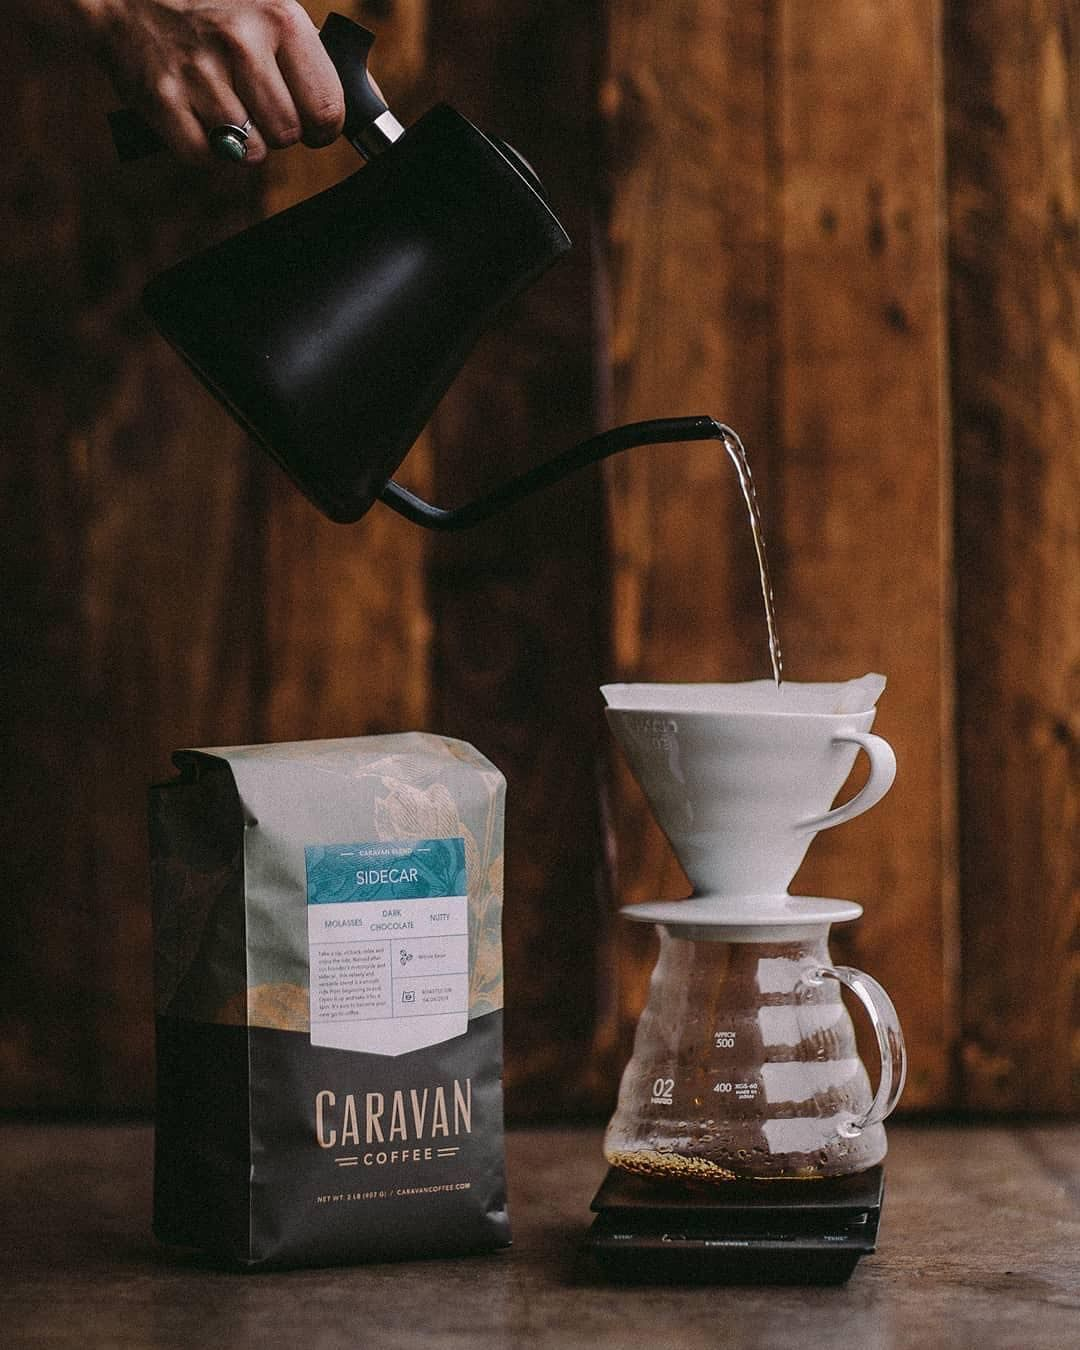 Posted @withrepost • @caravan_coffee Our 2lb bags are the perfect size for daily brewing at home. Just enough coffee that you won't run out but not so much that it goes stale before you finish it. . . .  brewedwithintention  coffee  coffeetime  sidecar  coffeelover  espresso  latte  coffeecup  brew  coffeeroaster  specialtycoffee  wholesale  buy  coffeeshop  baristalife  barista  drink  cafe  cafelife  newberg  oregon  portland  like  love  beautiful  welltraveled #espressoathome Posted @withr #espressoathome